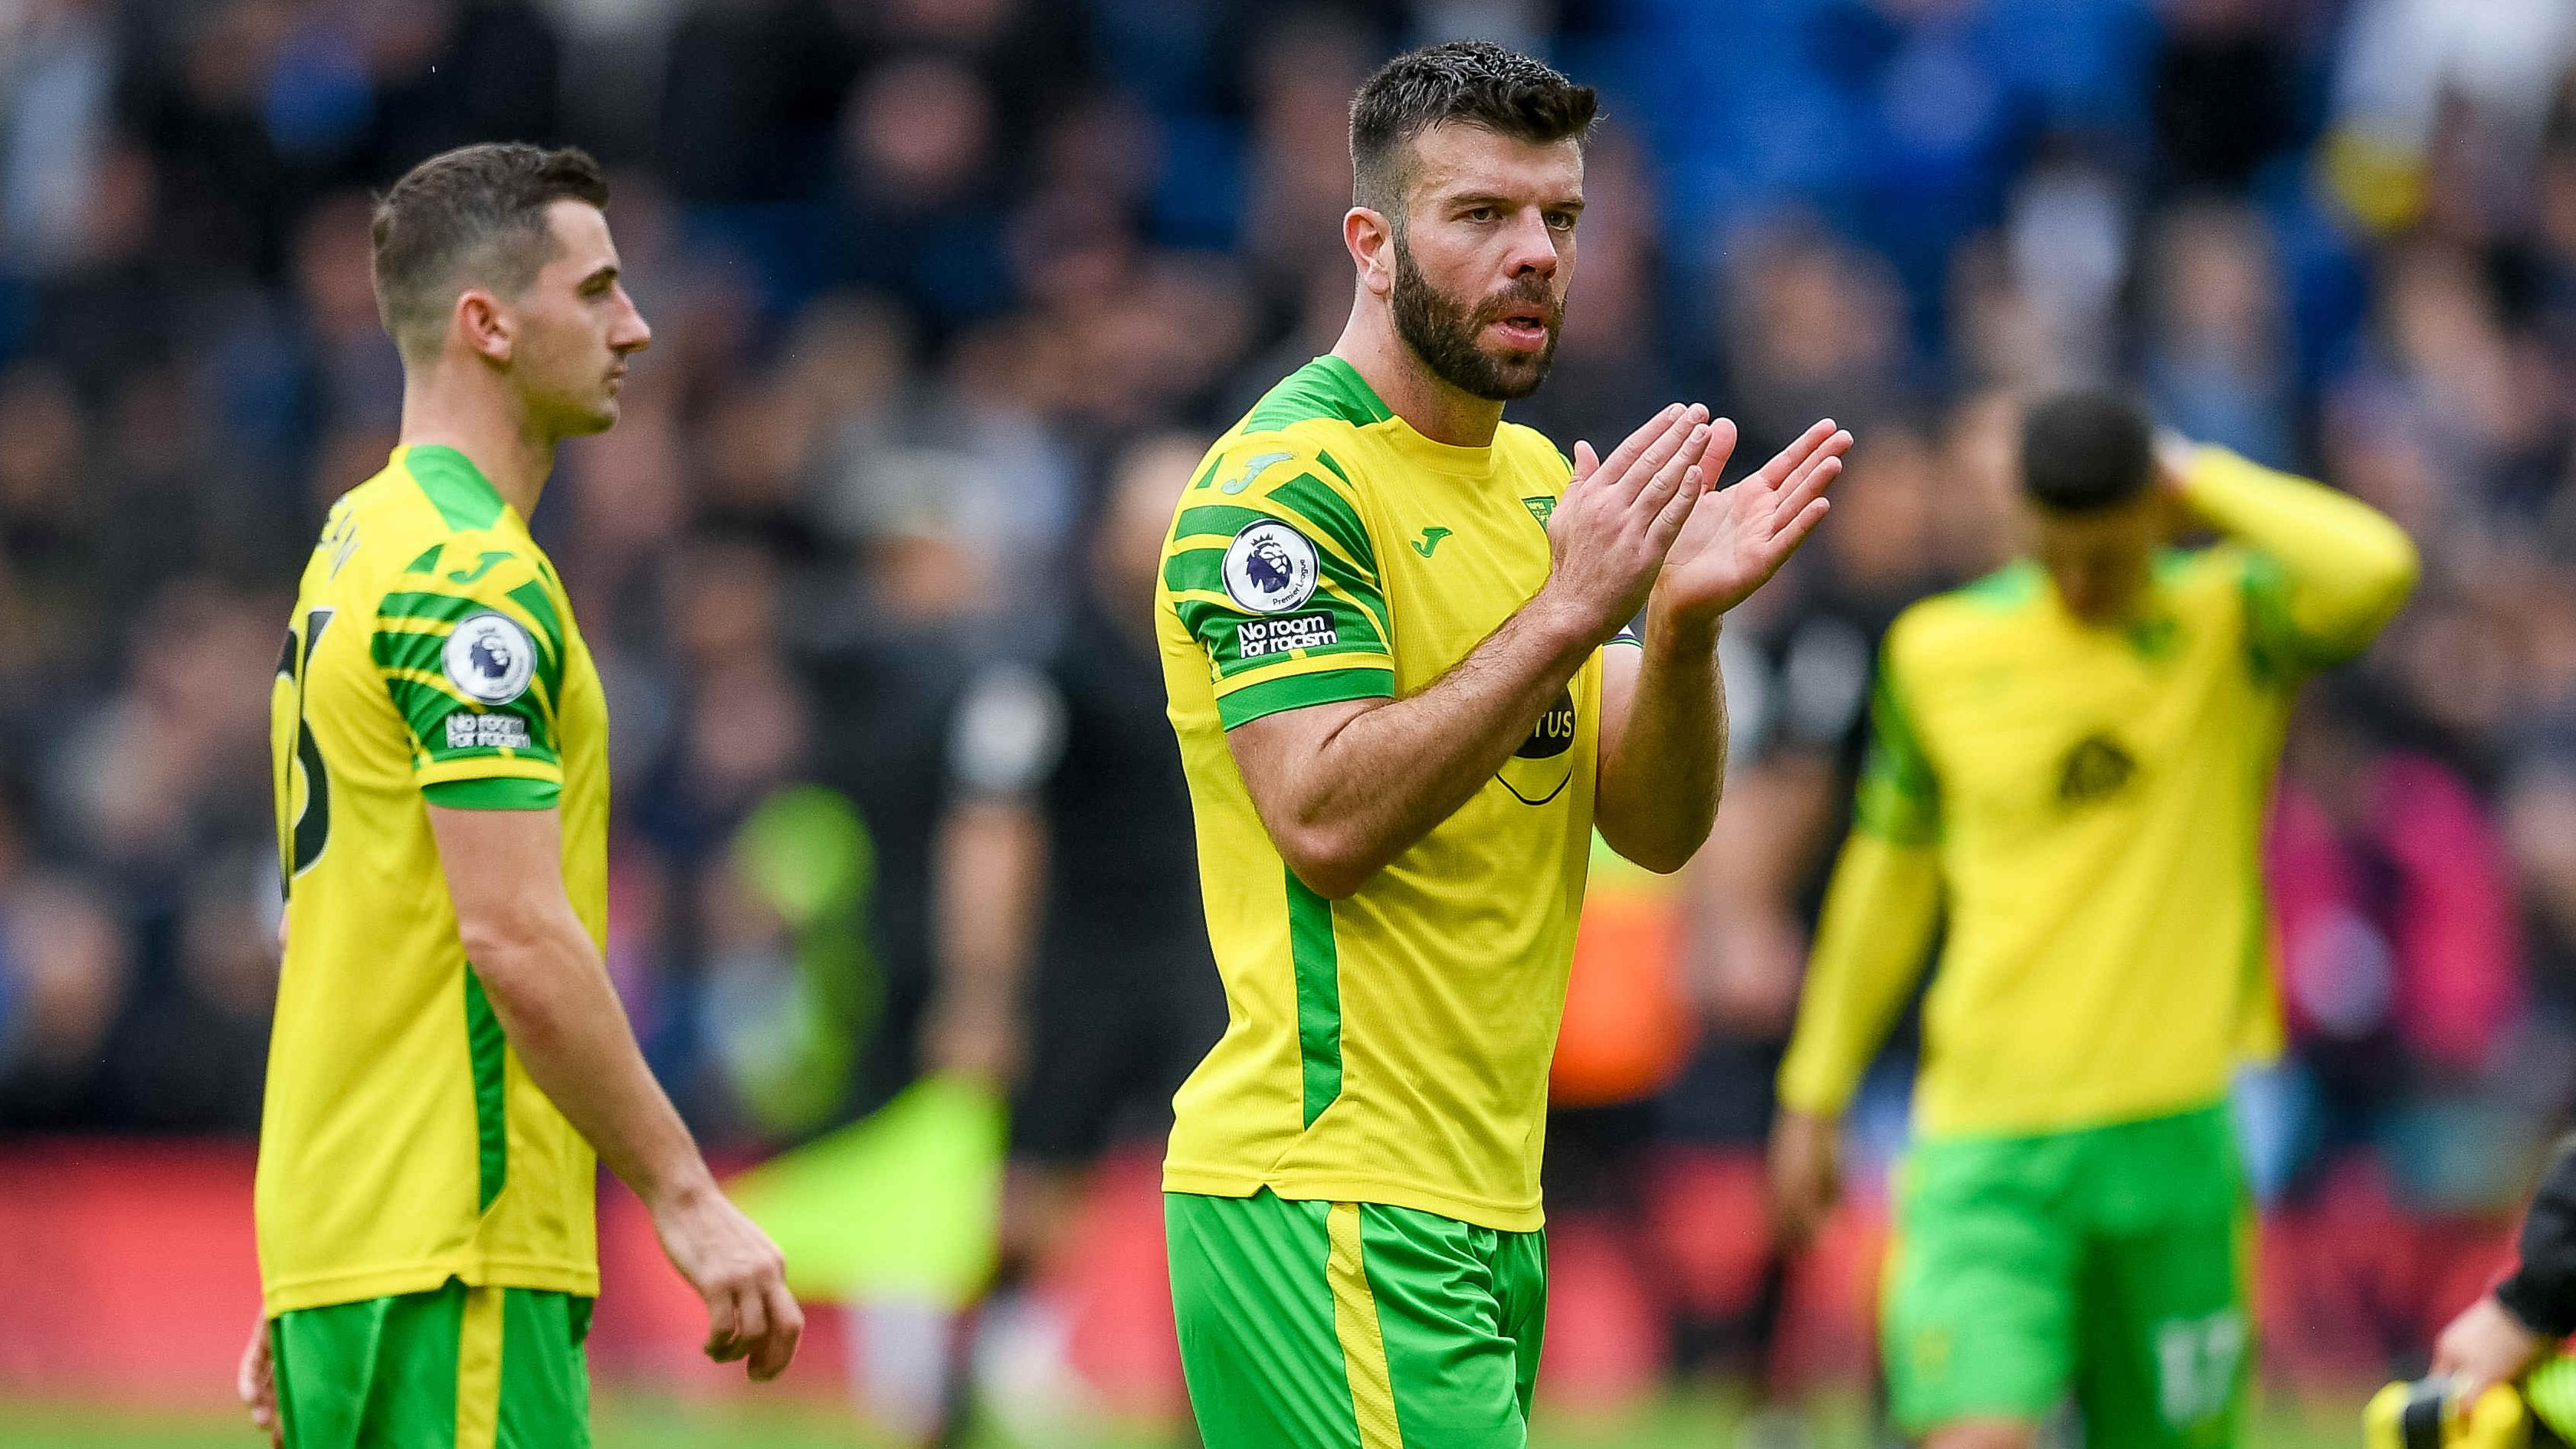 grant-hanley-it-is-an-apology-from-the-players-because-that-is-not-what-we-are-about